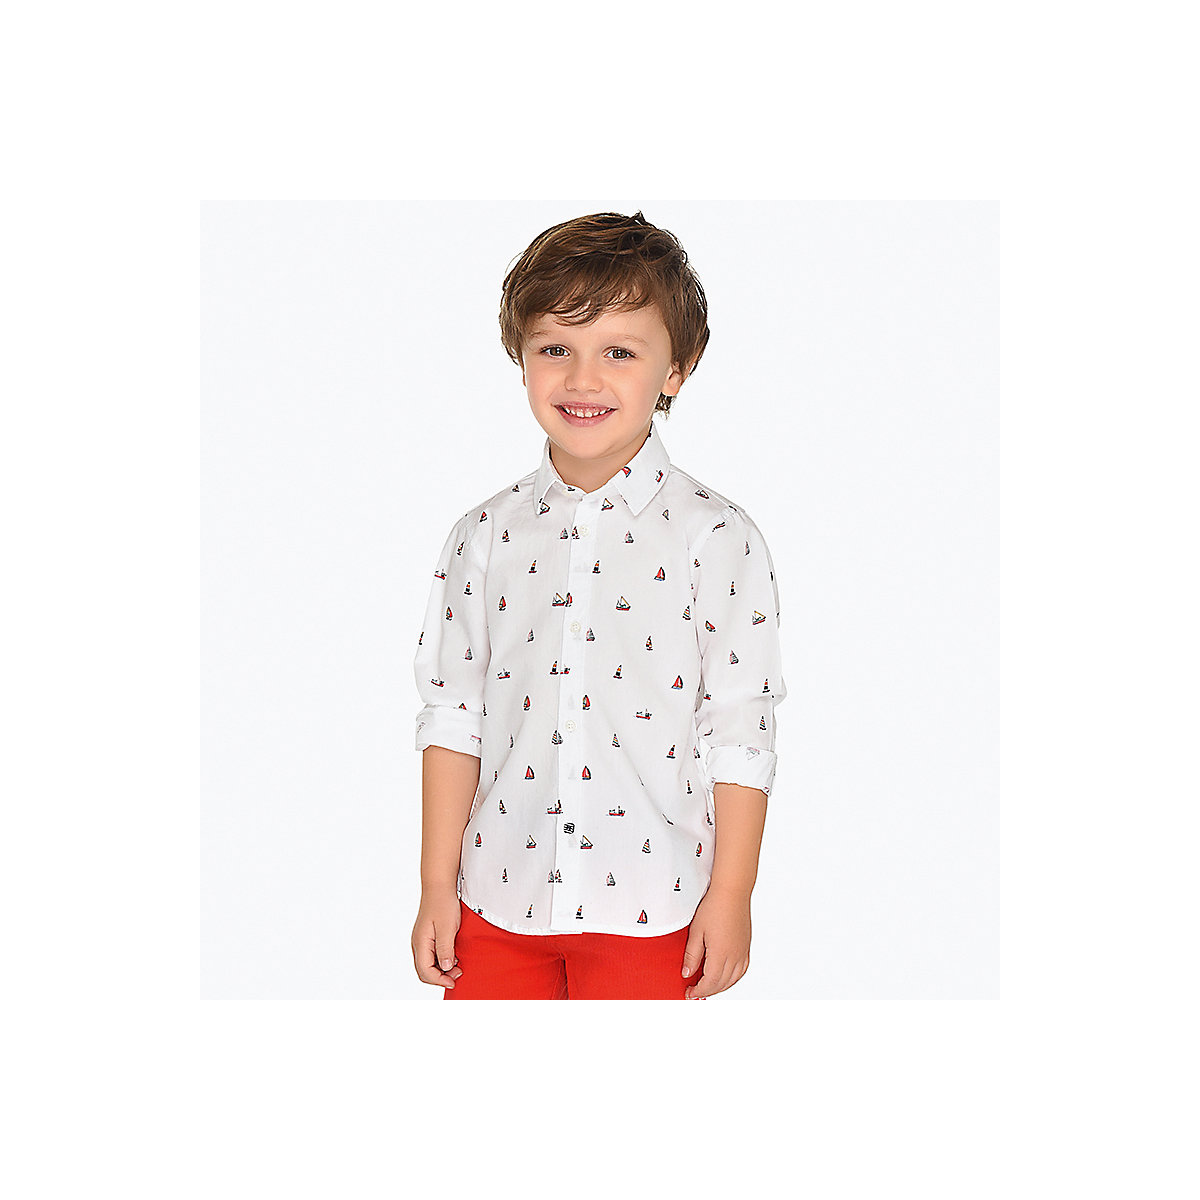 Blouses & Shirts MAYORAL 10689076 Children s Clothing shirt with long sleeve for a boy natural materials stylish long sleeve scoop neck floral print women s blouse